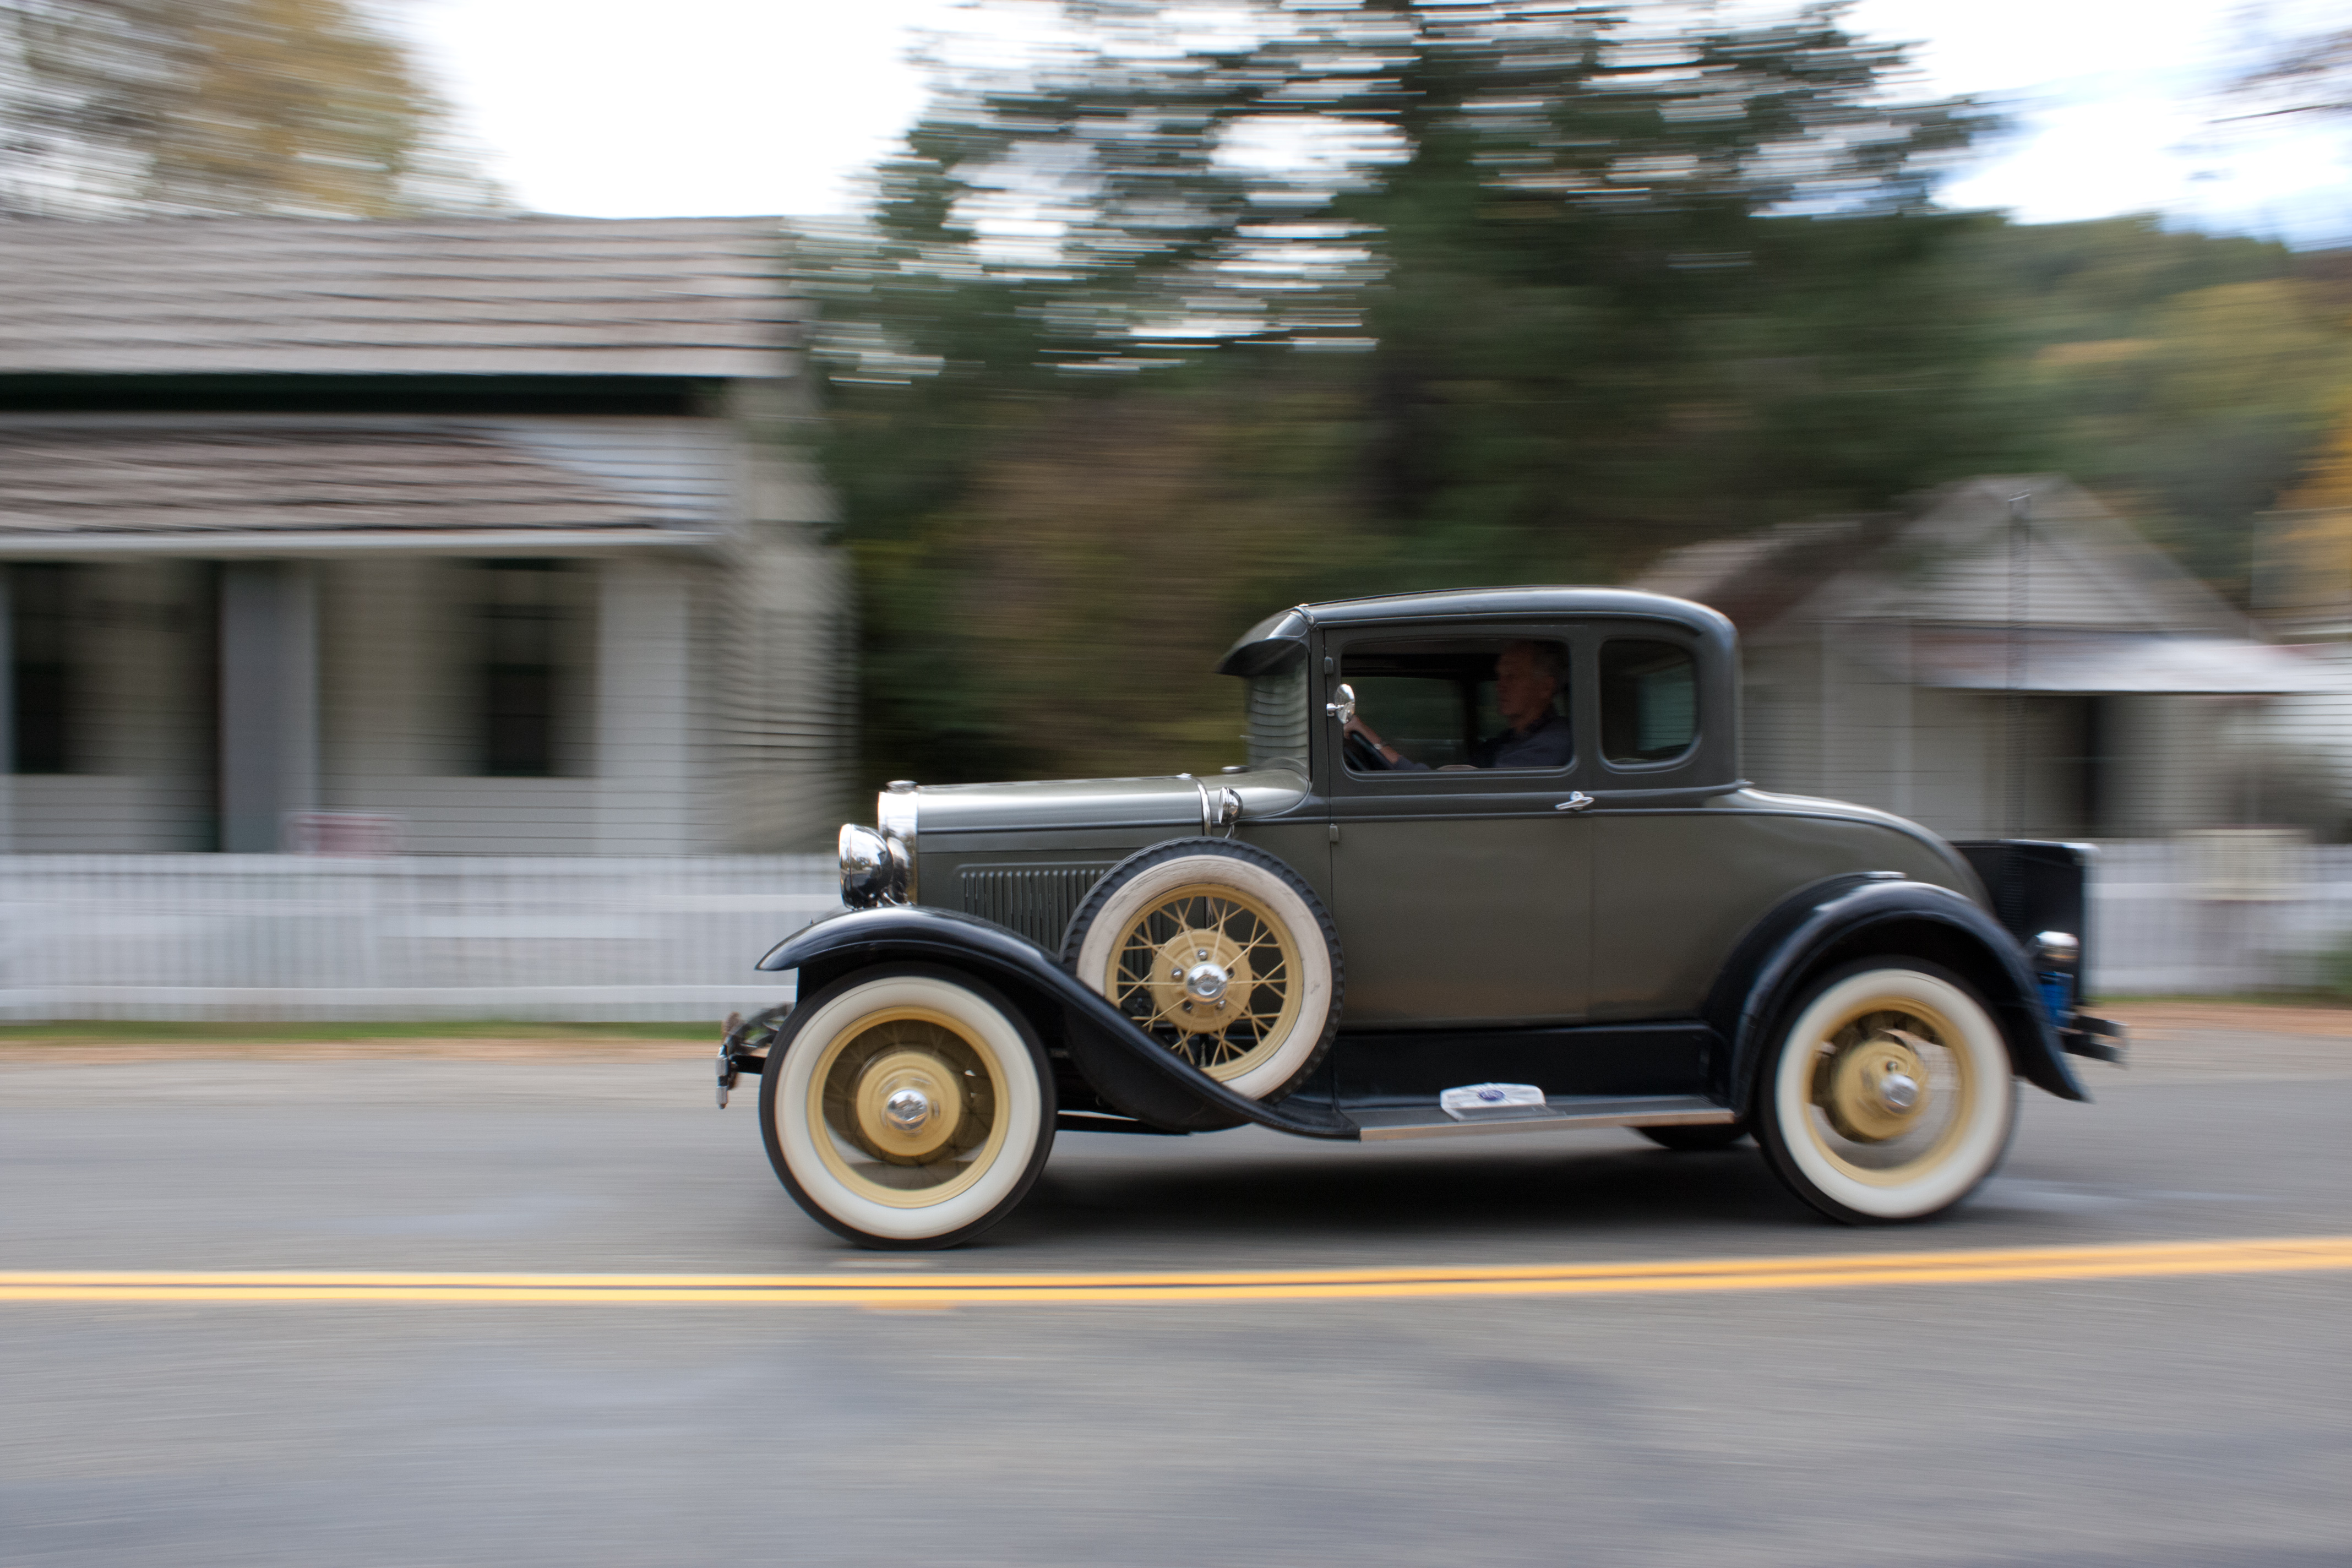 File:Old Ford.jpg - Wikimedia Commons